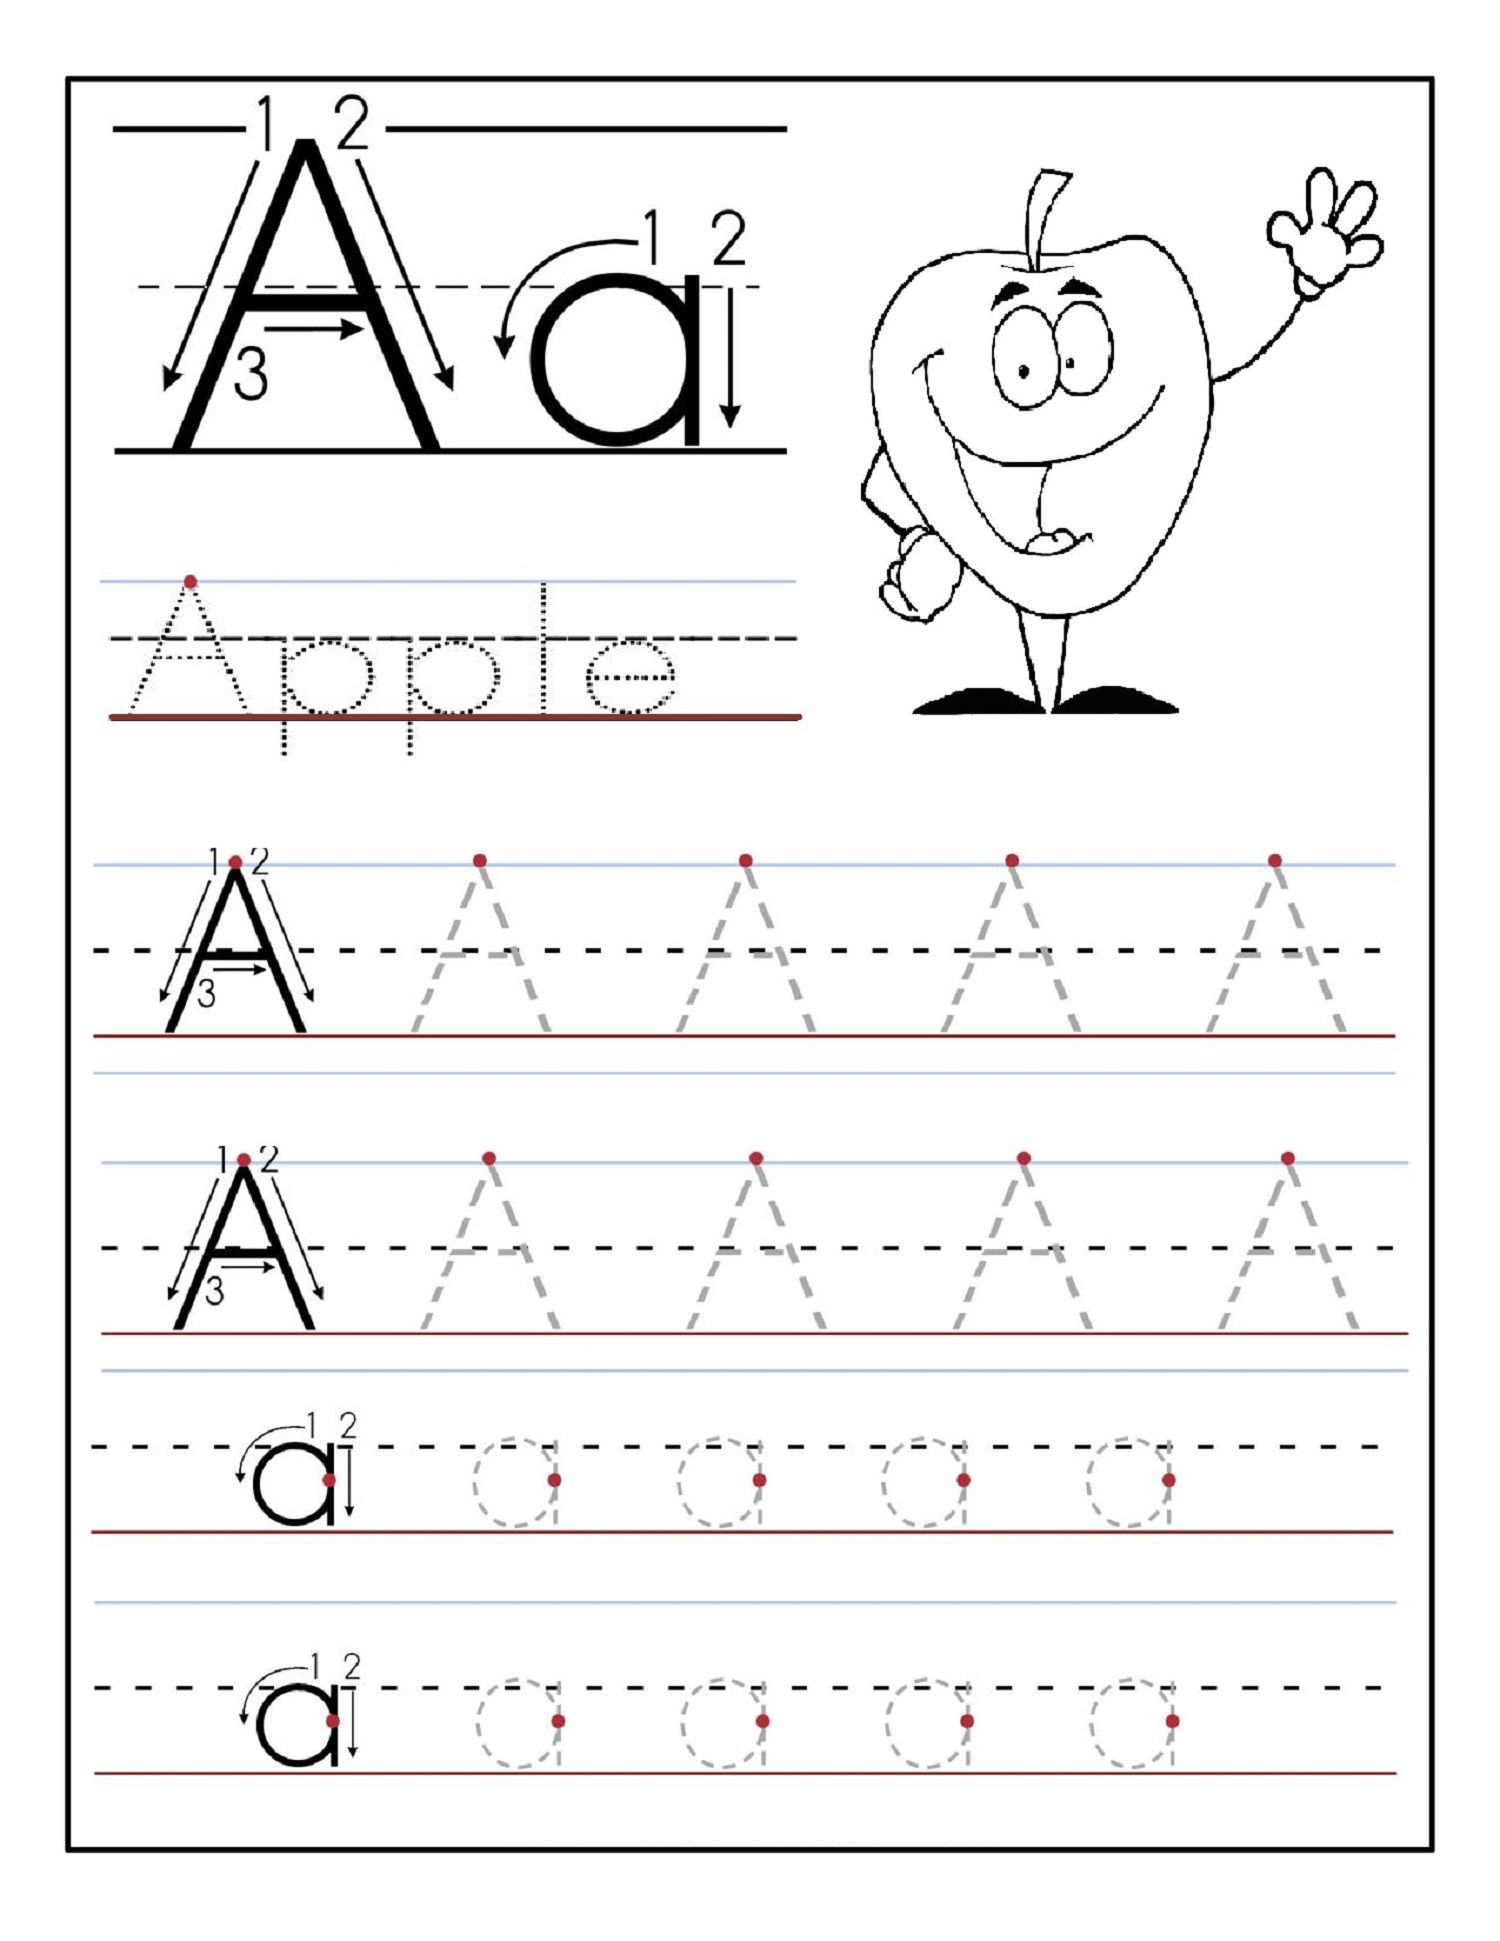 Tracing The Letter A For First Writing Learning